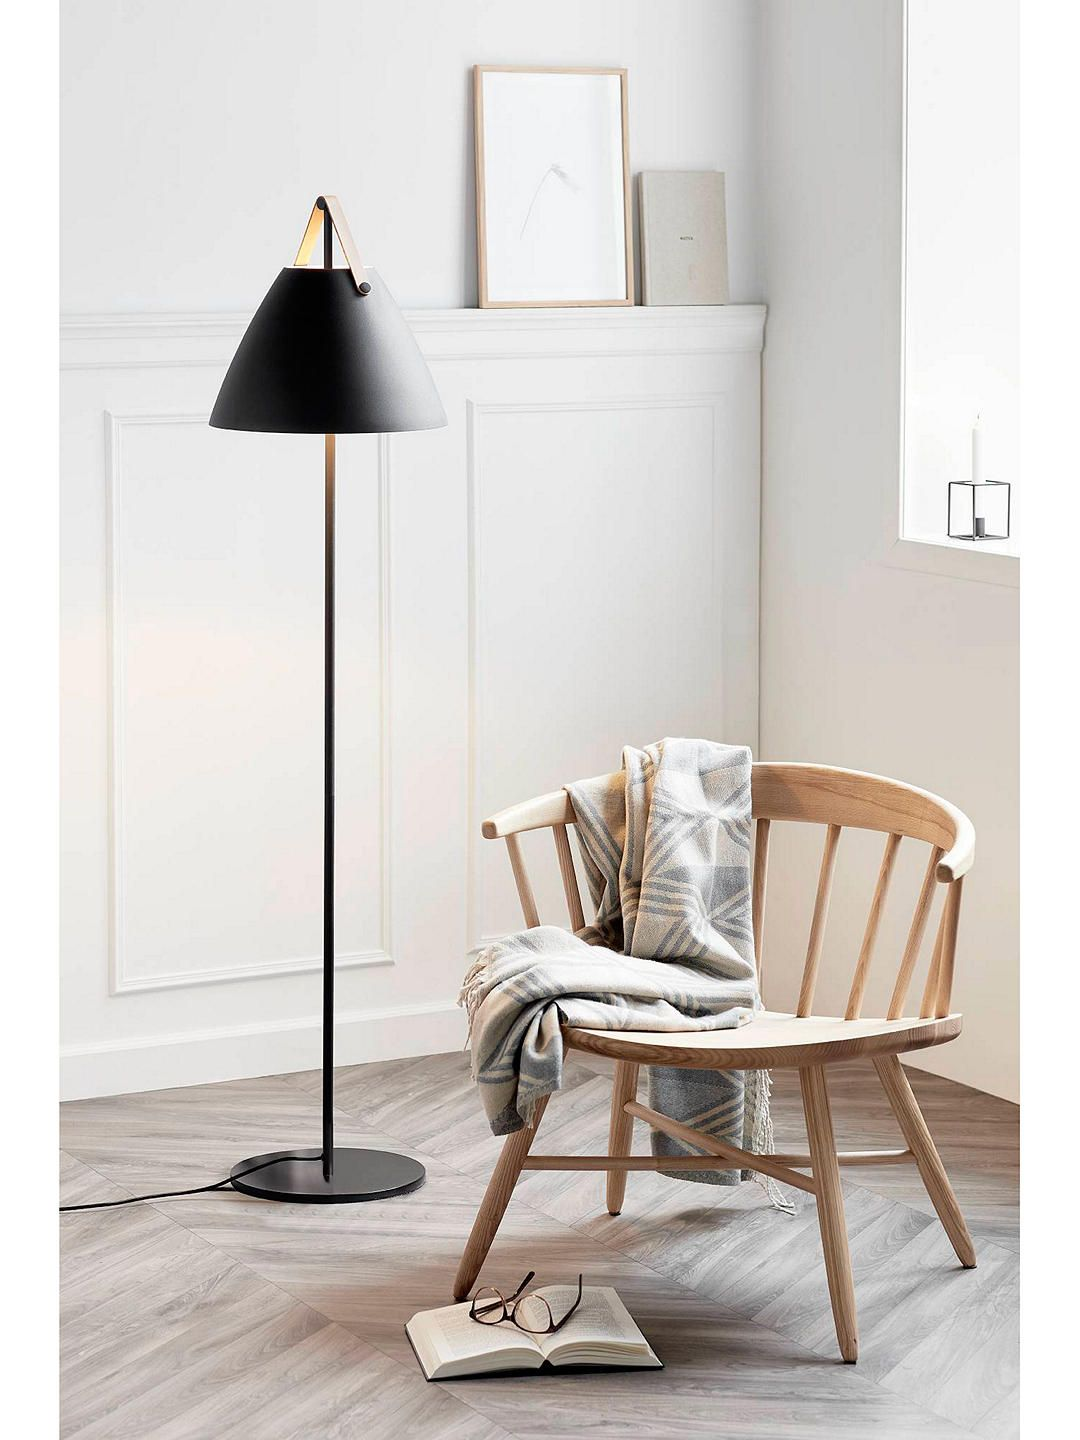 Nordlux Design For The People Strap Floor Lamp Black In 2020 Nordlux Floor Lamp Black Floor Lamp